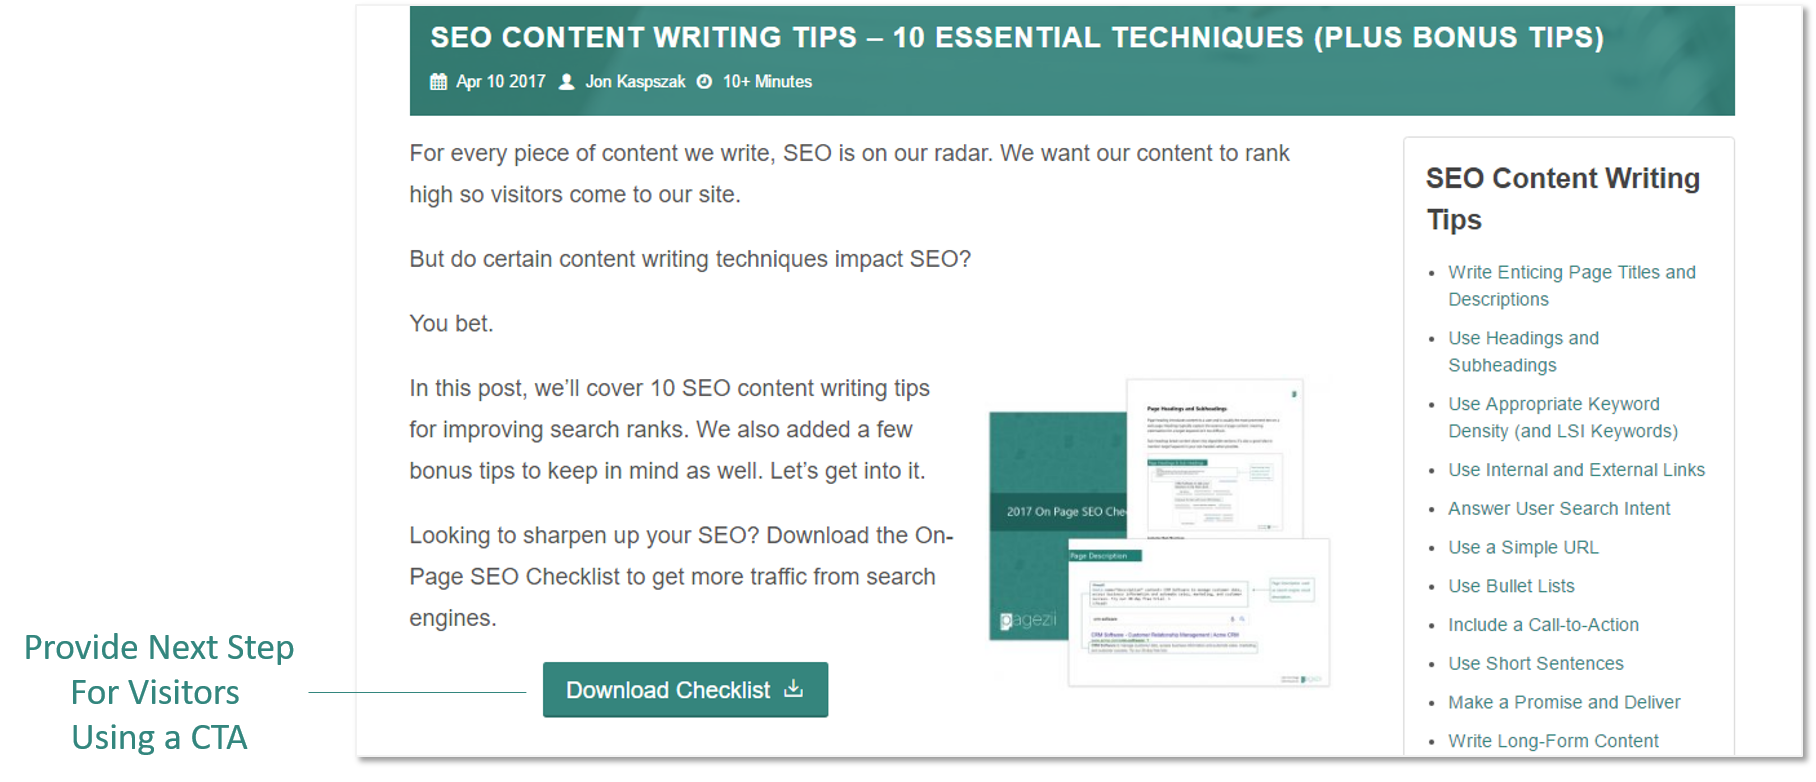 SEO Content Writing Tips - 10 Simple Techniques (Plus Bonus Tips)